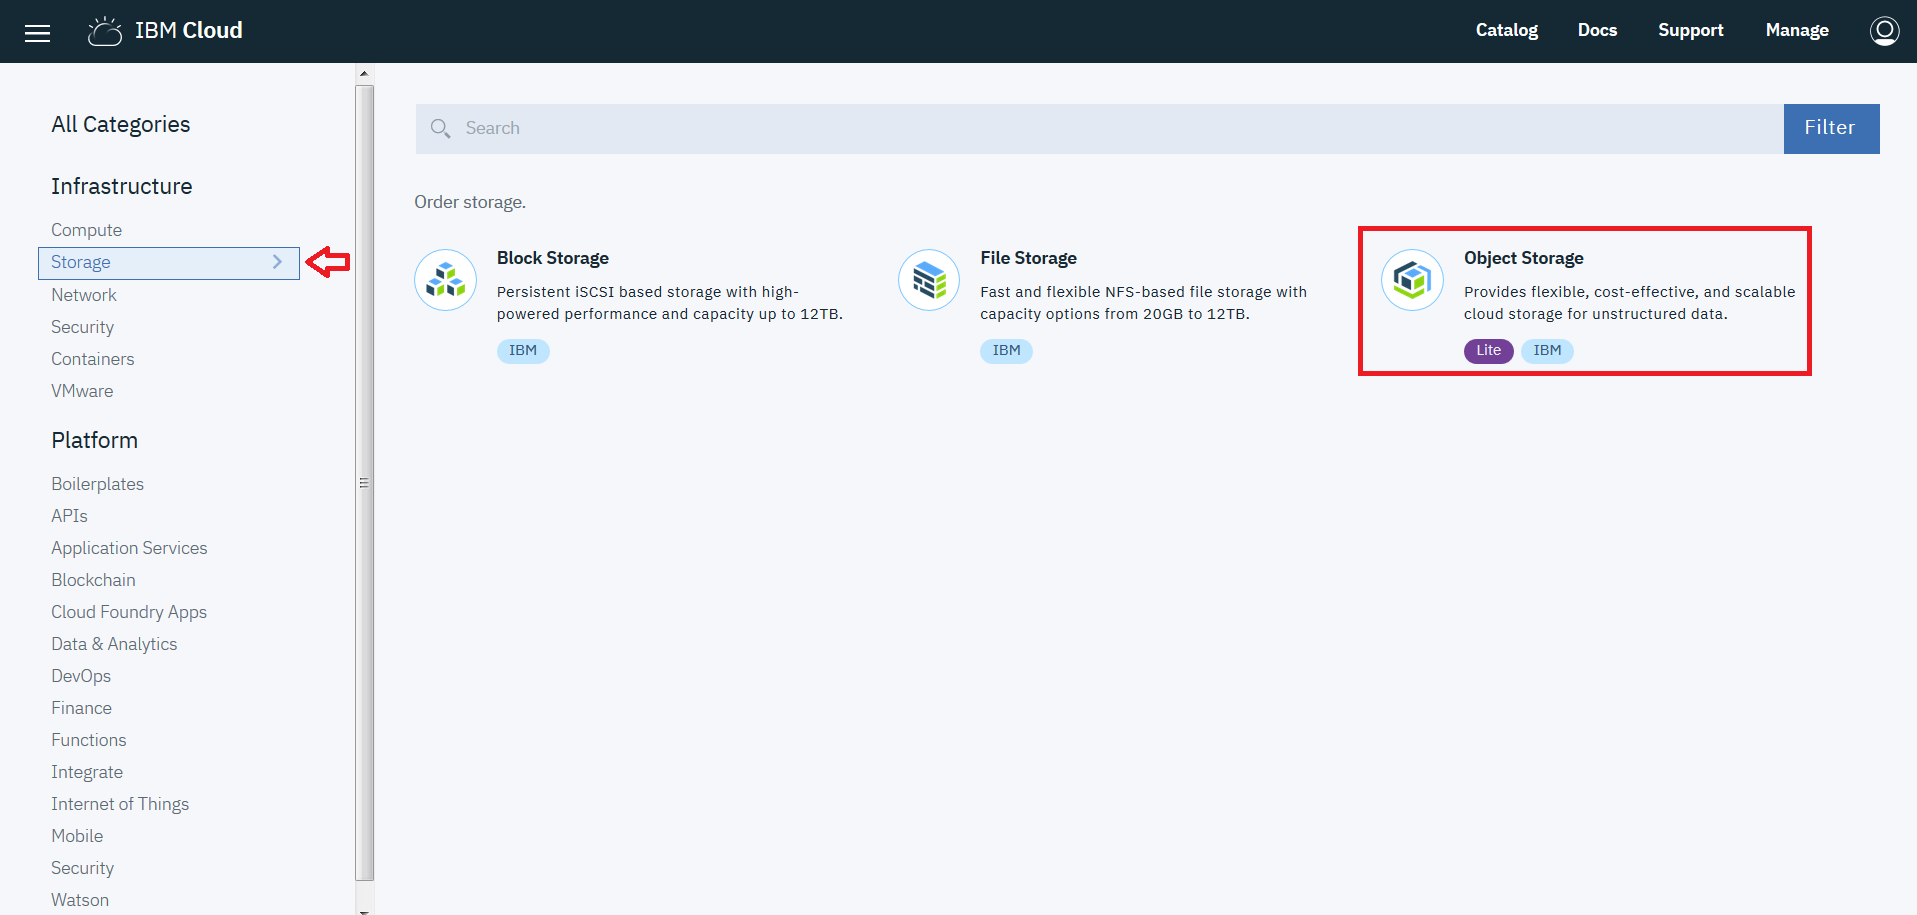 Analyze images from Cloud Object Storage with Watson Visual